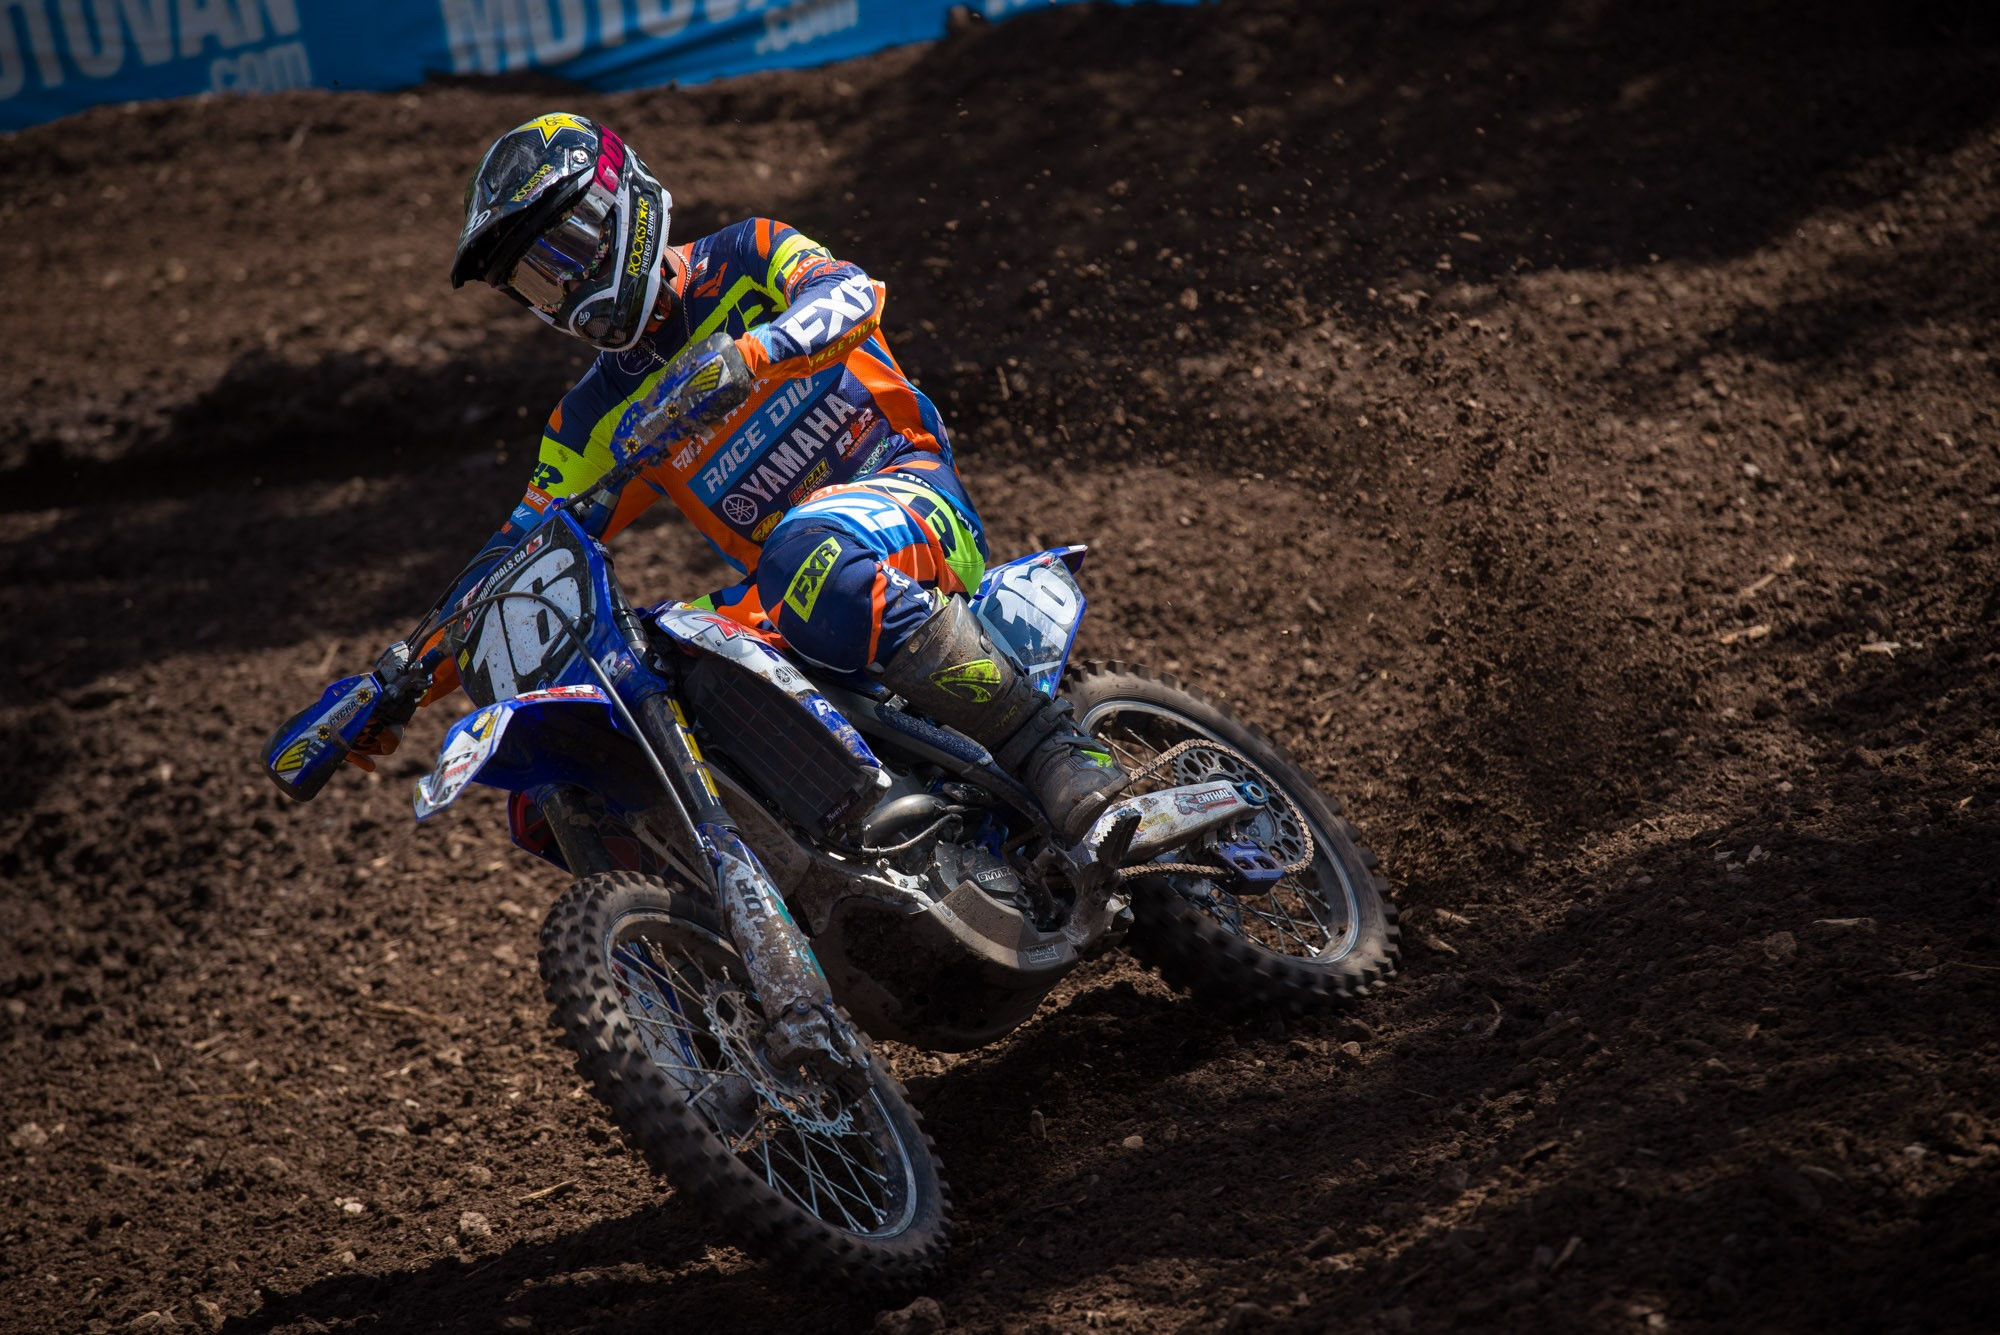 MX101 FXR Yamaha Team's Jess Pettis has three podium finishes this season after competing in only 6 of 8 rounds.